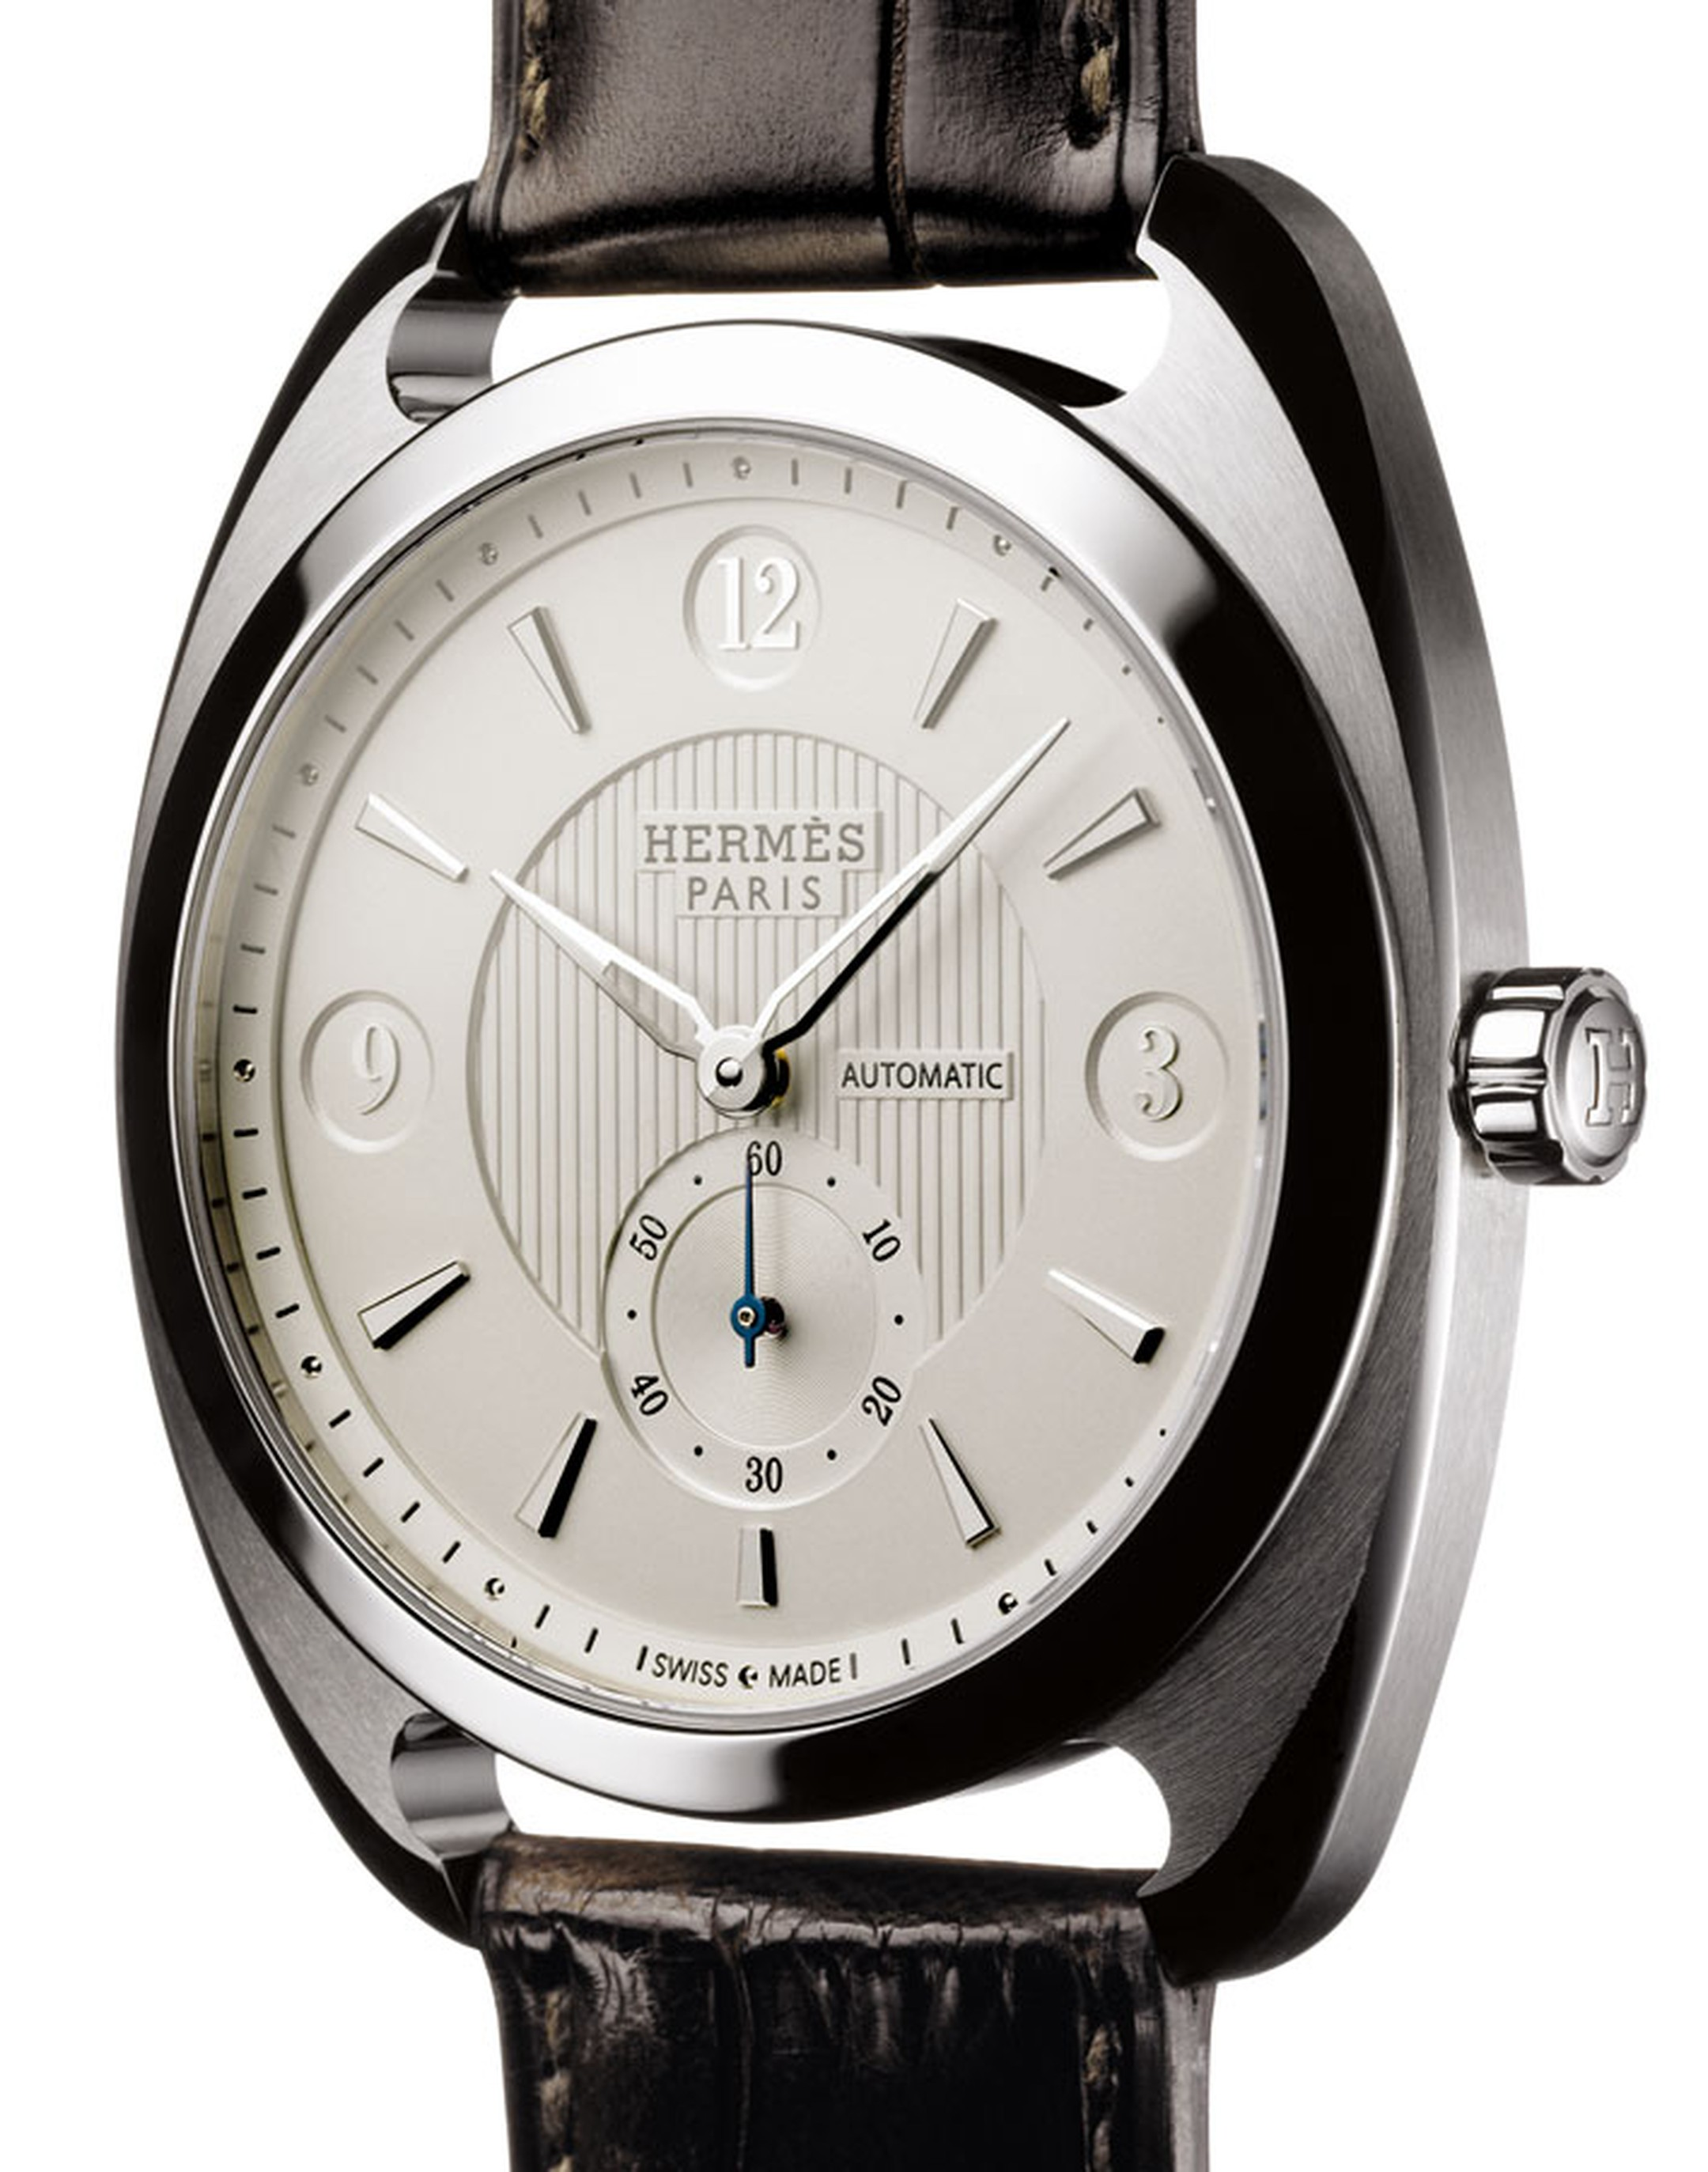 Hermes. Dressage Small Second Watch in silver, steel and black alligator strap. Price from £7,050